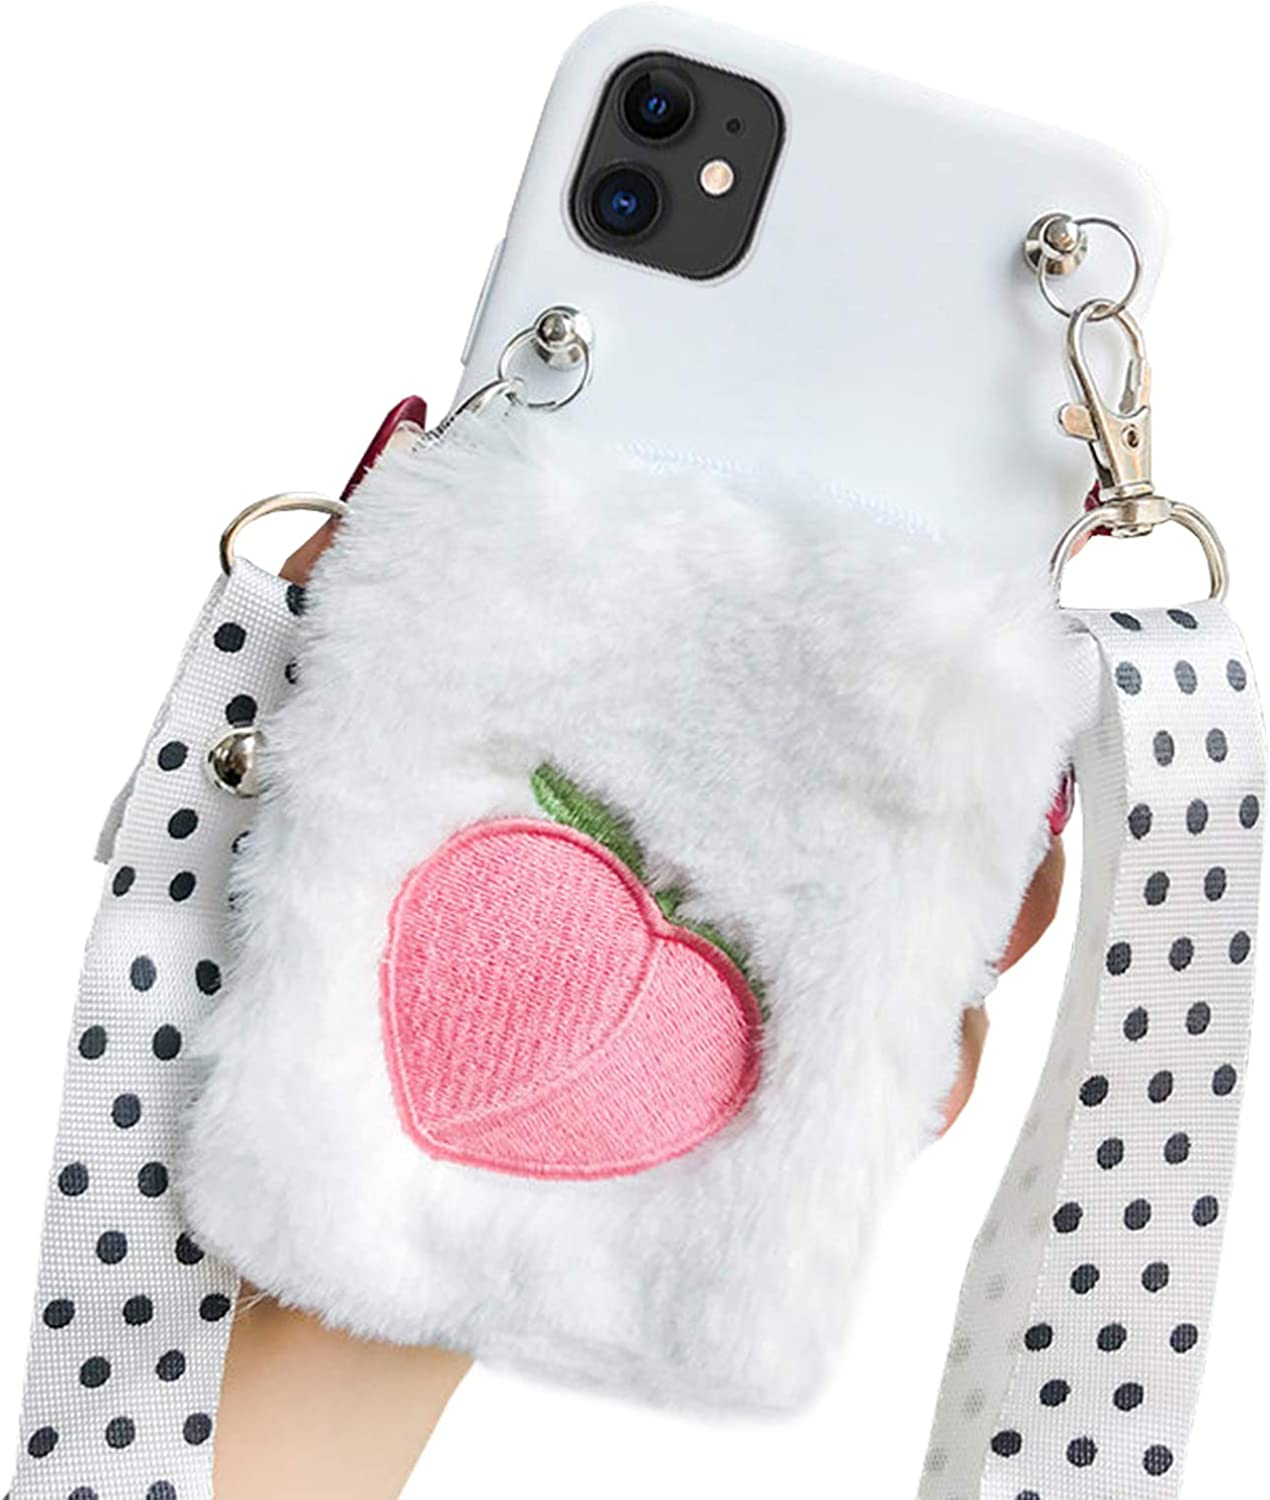 SGVAHY Fluffy Wallet Case for iPhone 7 Plus / 8 Plus, Cute Fur Peach Coin Purse Cover Case with Long Lanyard Ultra-Thin Soft Silicone Case Shockproof Protective Case (Peach, iPhone 7 Plus / 8 Plus)